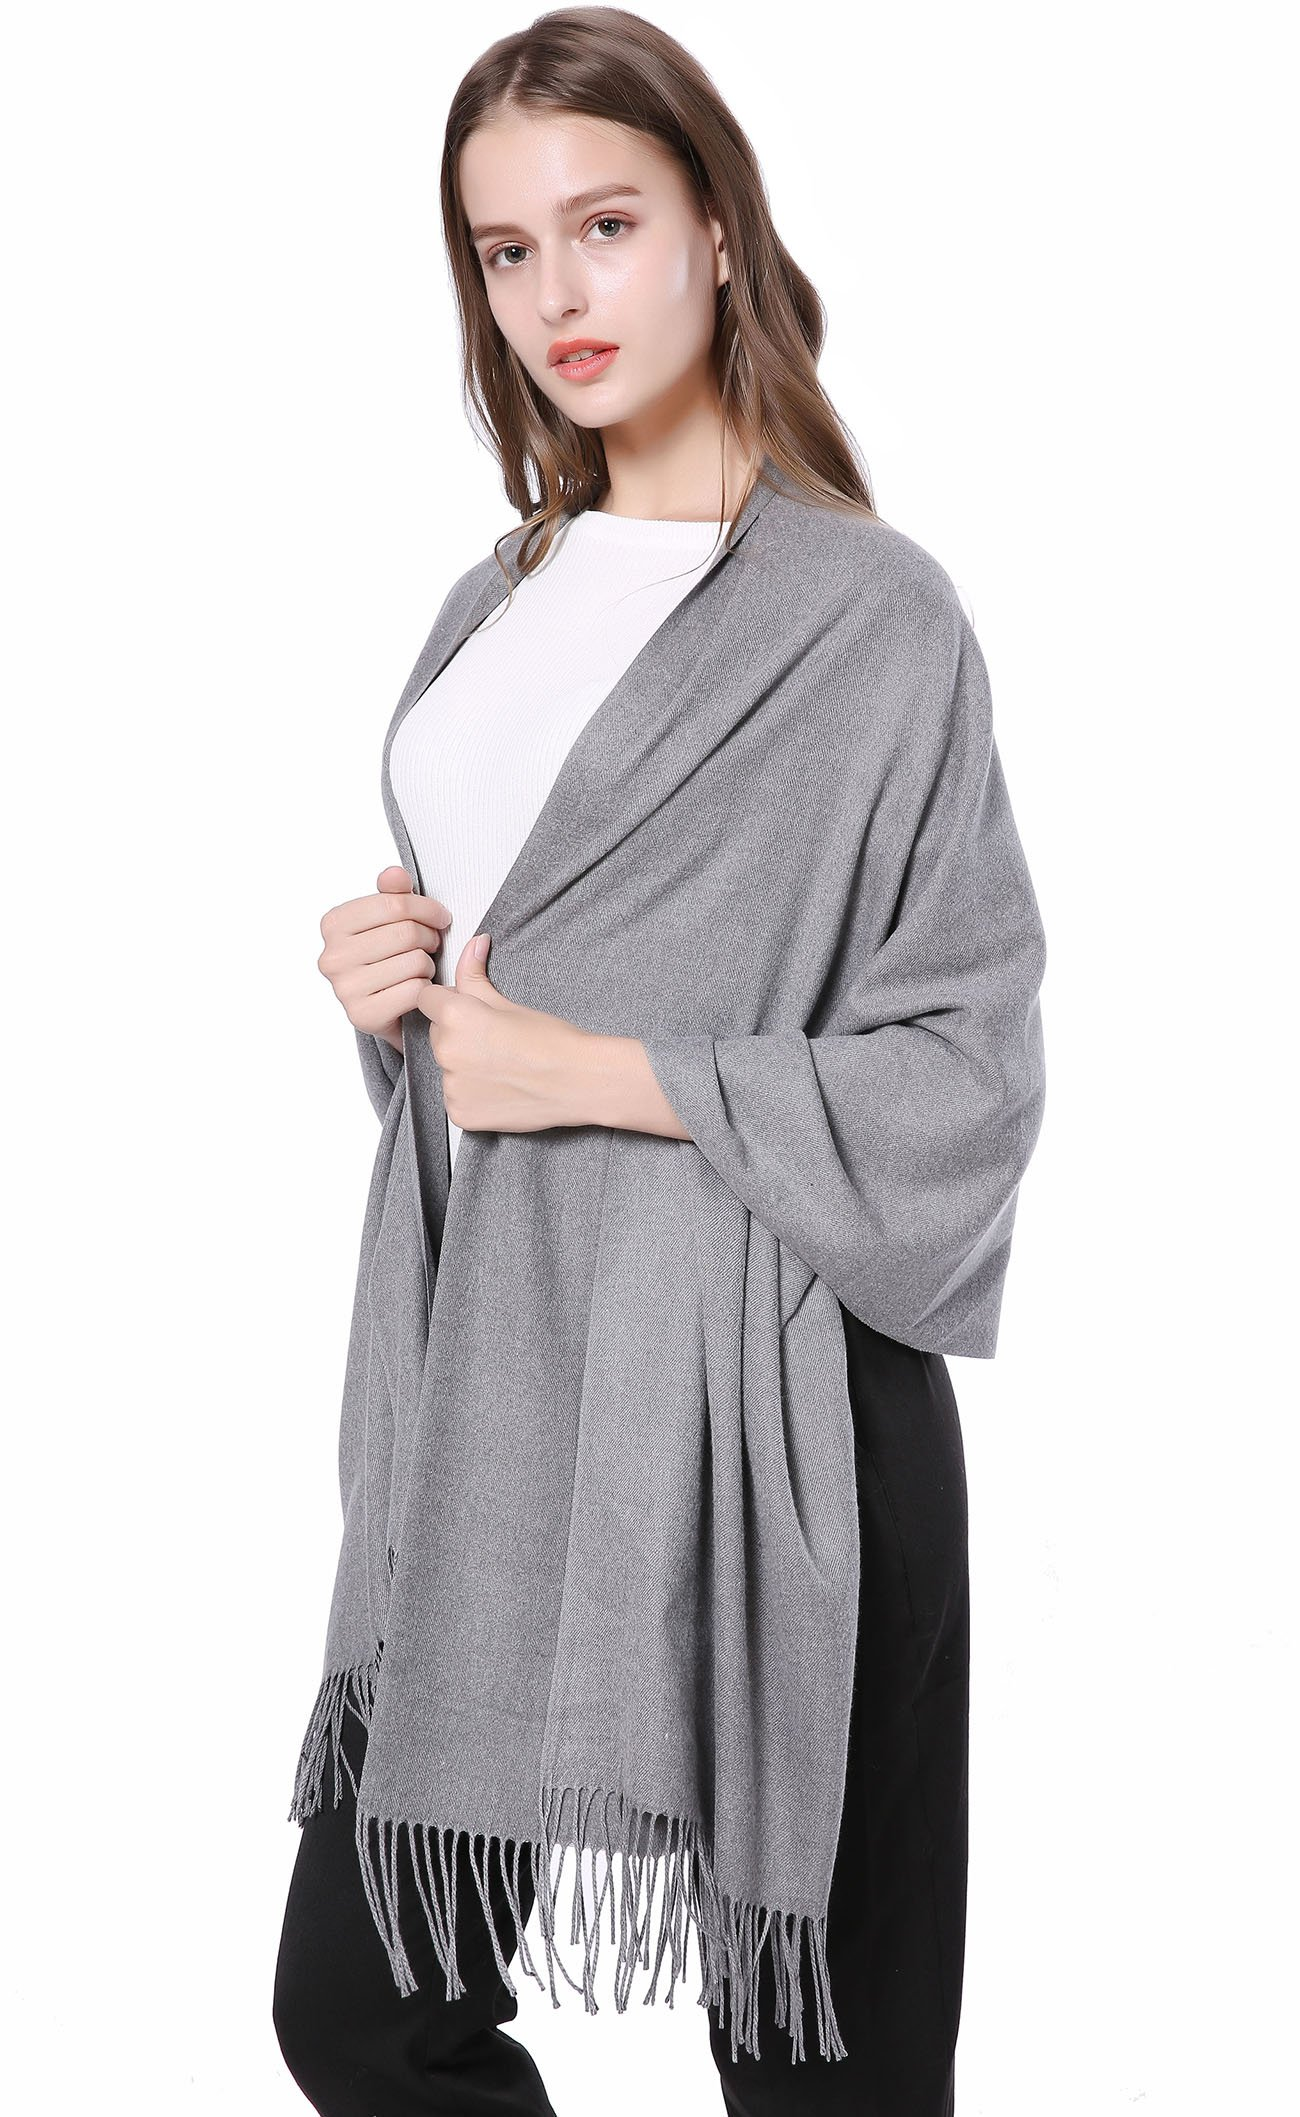 JAKY Global Cashmere Scarf Pashminas Wraps Shawl Super Soft and Warm 70'' x 27'' Scarves Women Men(Grey) by JAKY-Global